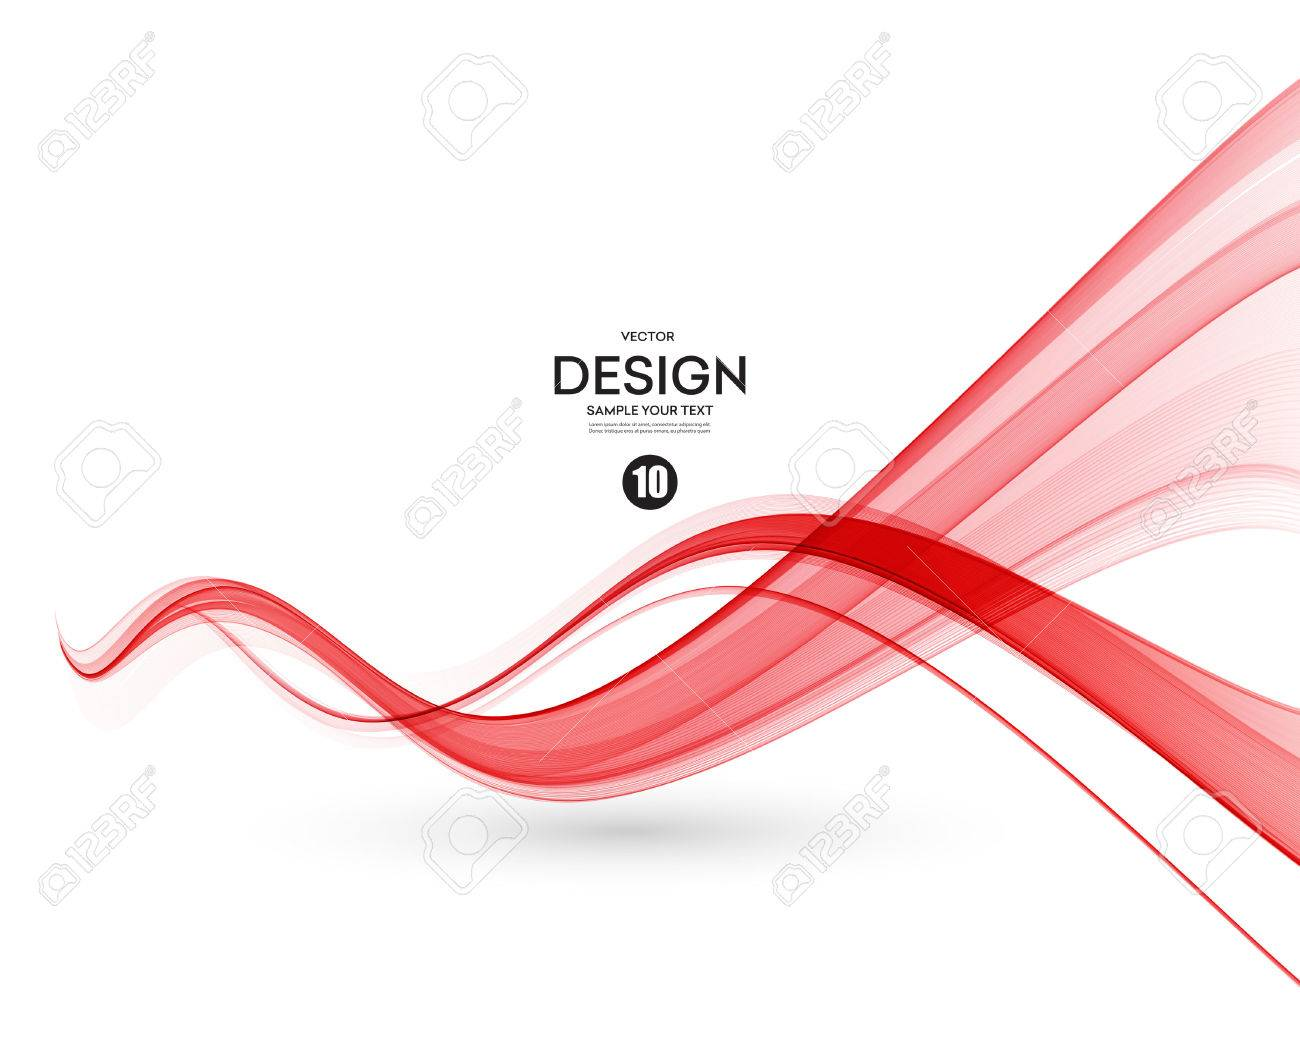 Abstract smooth color wave vector. Curve flow red motion illustration - 53407924